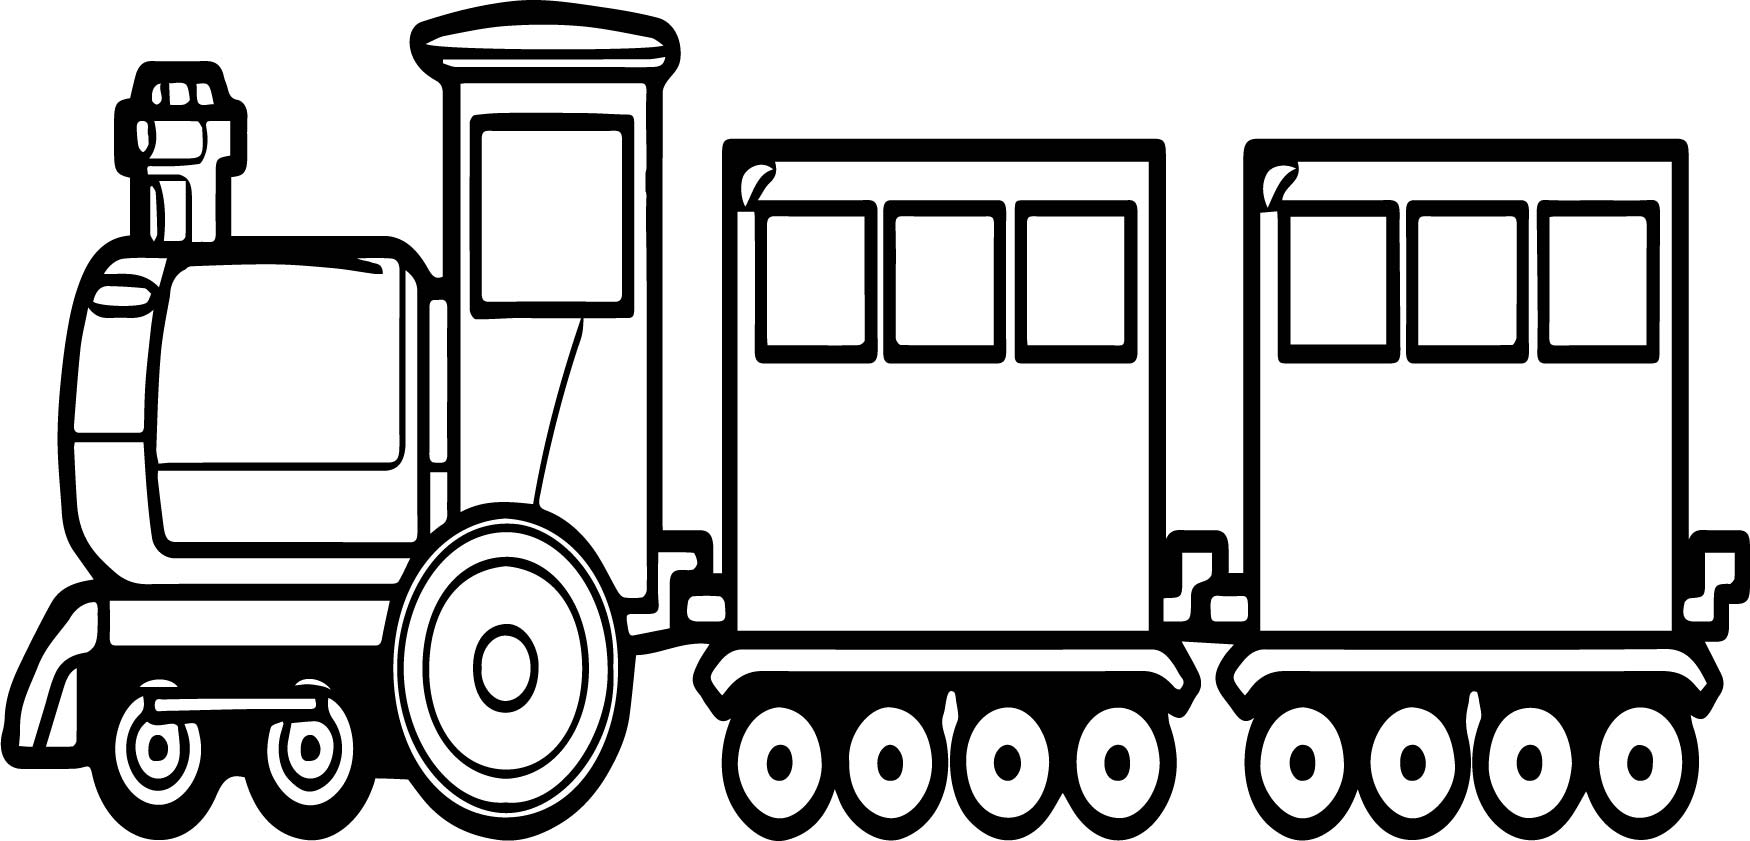 simple train coloring page free printable train coloring pages for kids cool2bkids coloring page train simple